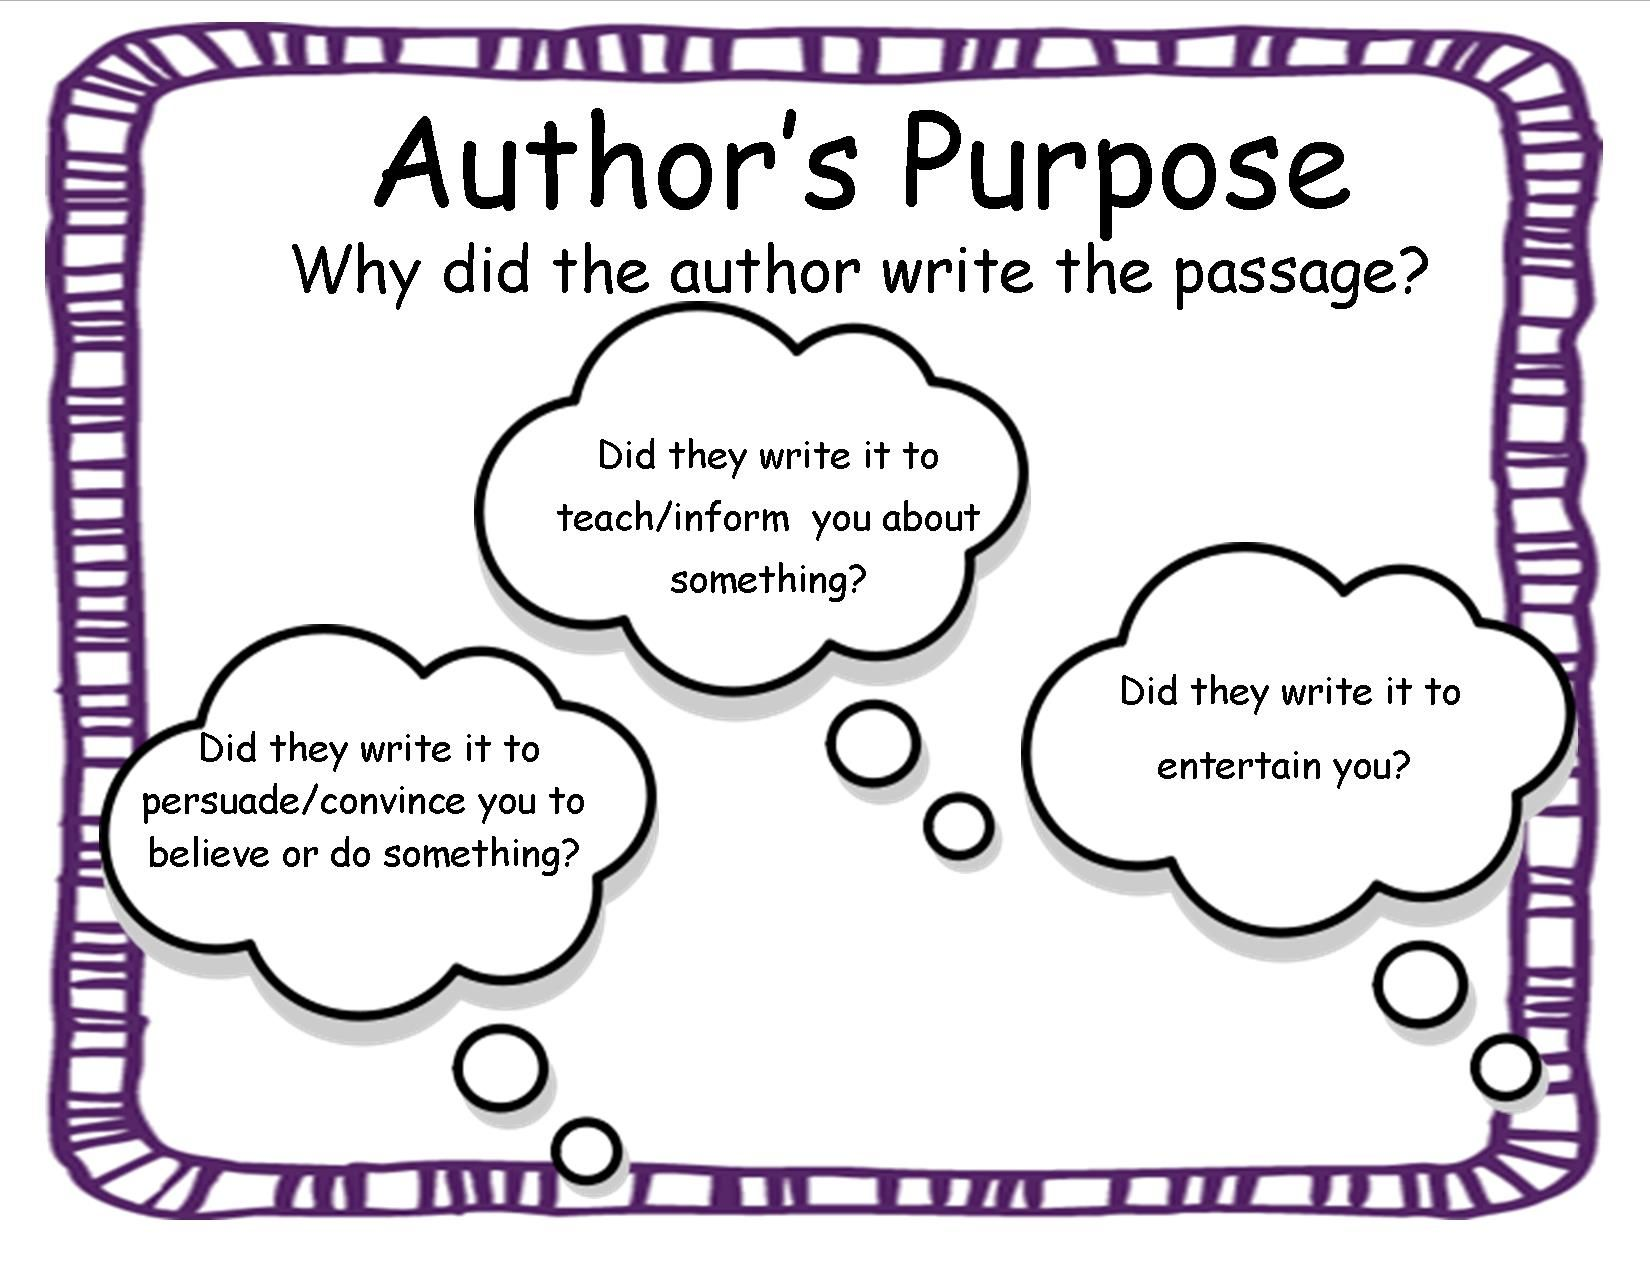 Authors Purpose Printout With Images